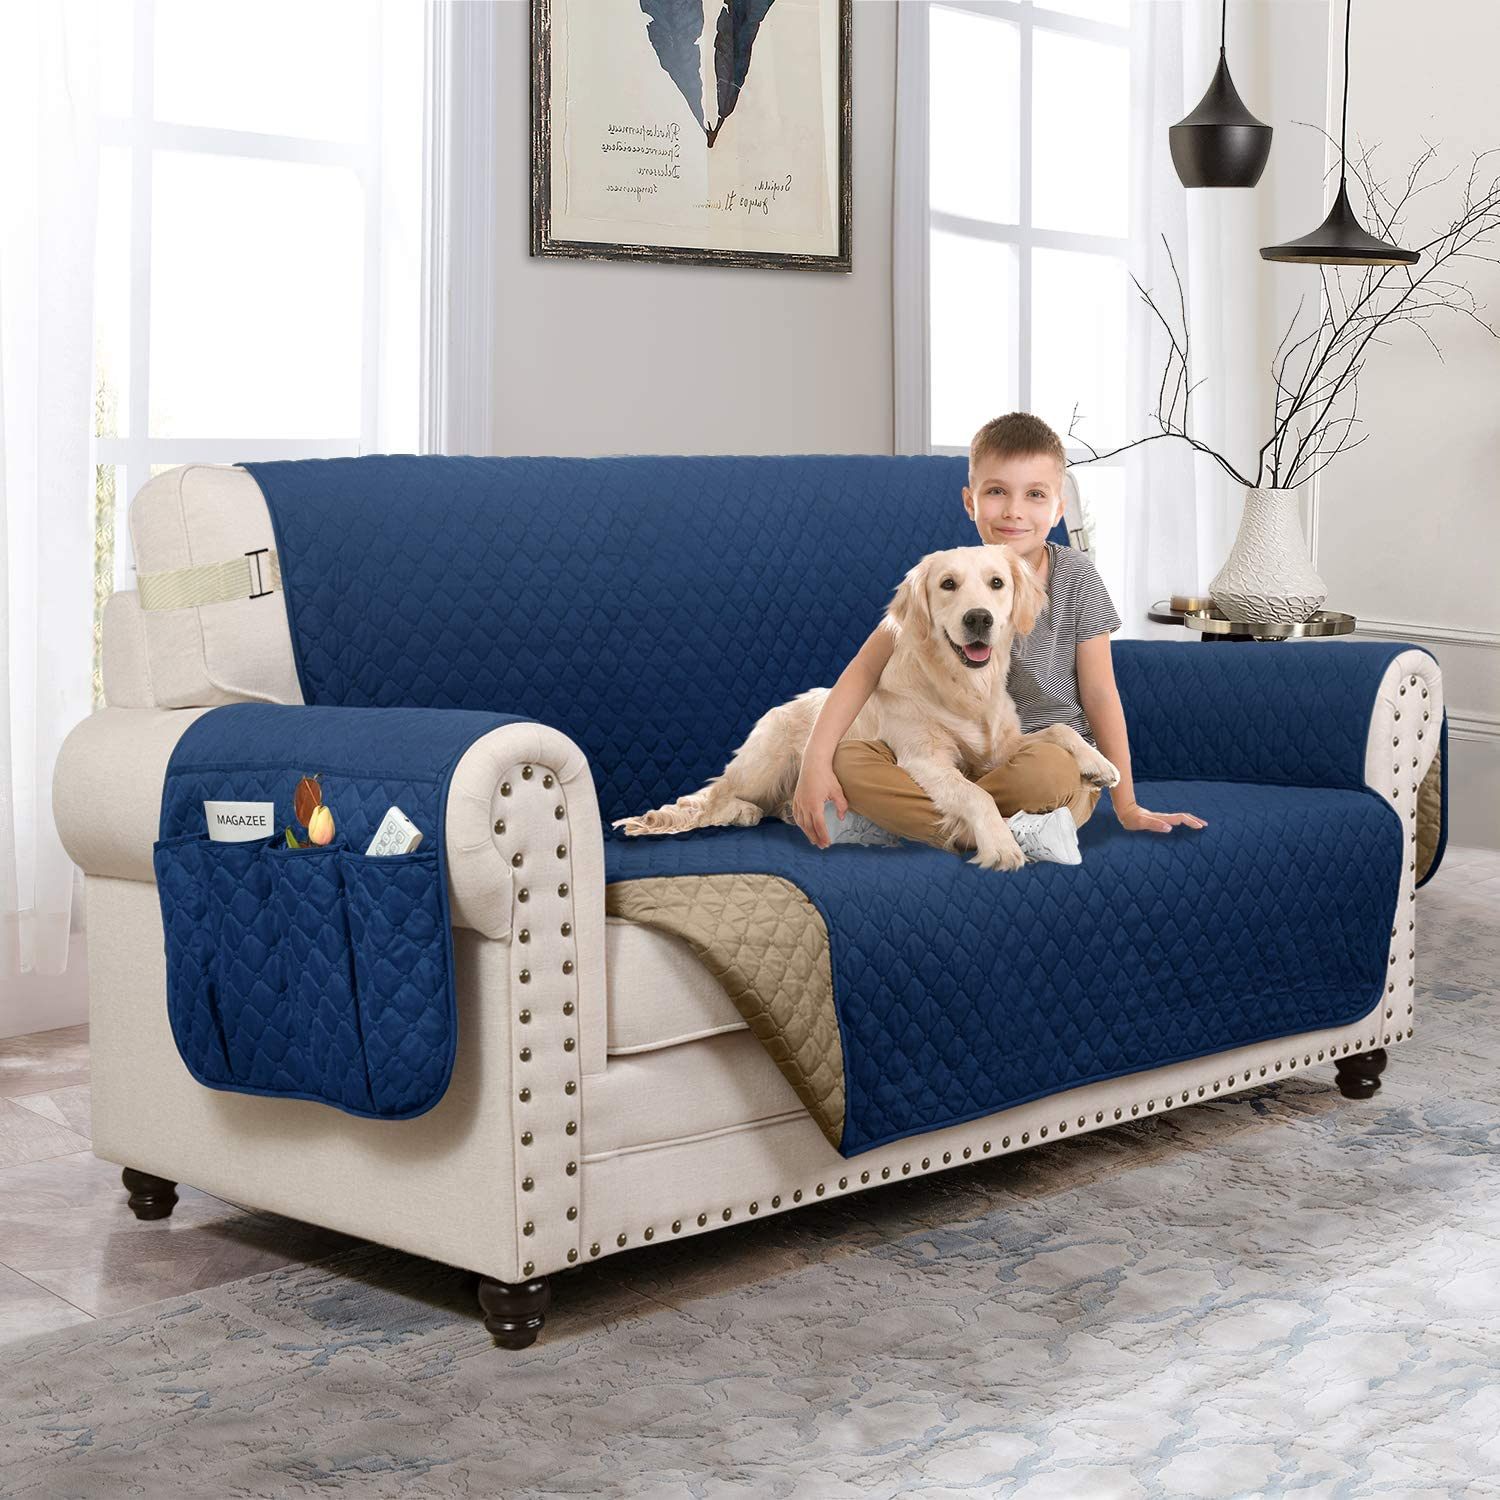 MOYMO Reversible Loveseat Cover,Loveseat Slipover with Strap,Loveseat Protector with Pockets,Machine Washable Loveseat Covers for Livingroom,Children,Pets,Kid(Loveseat:Navy Blue/Brown)